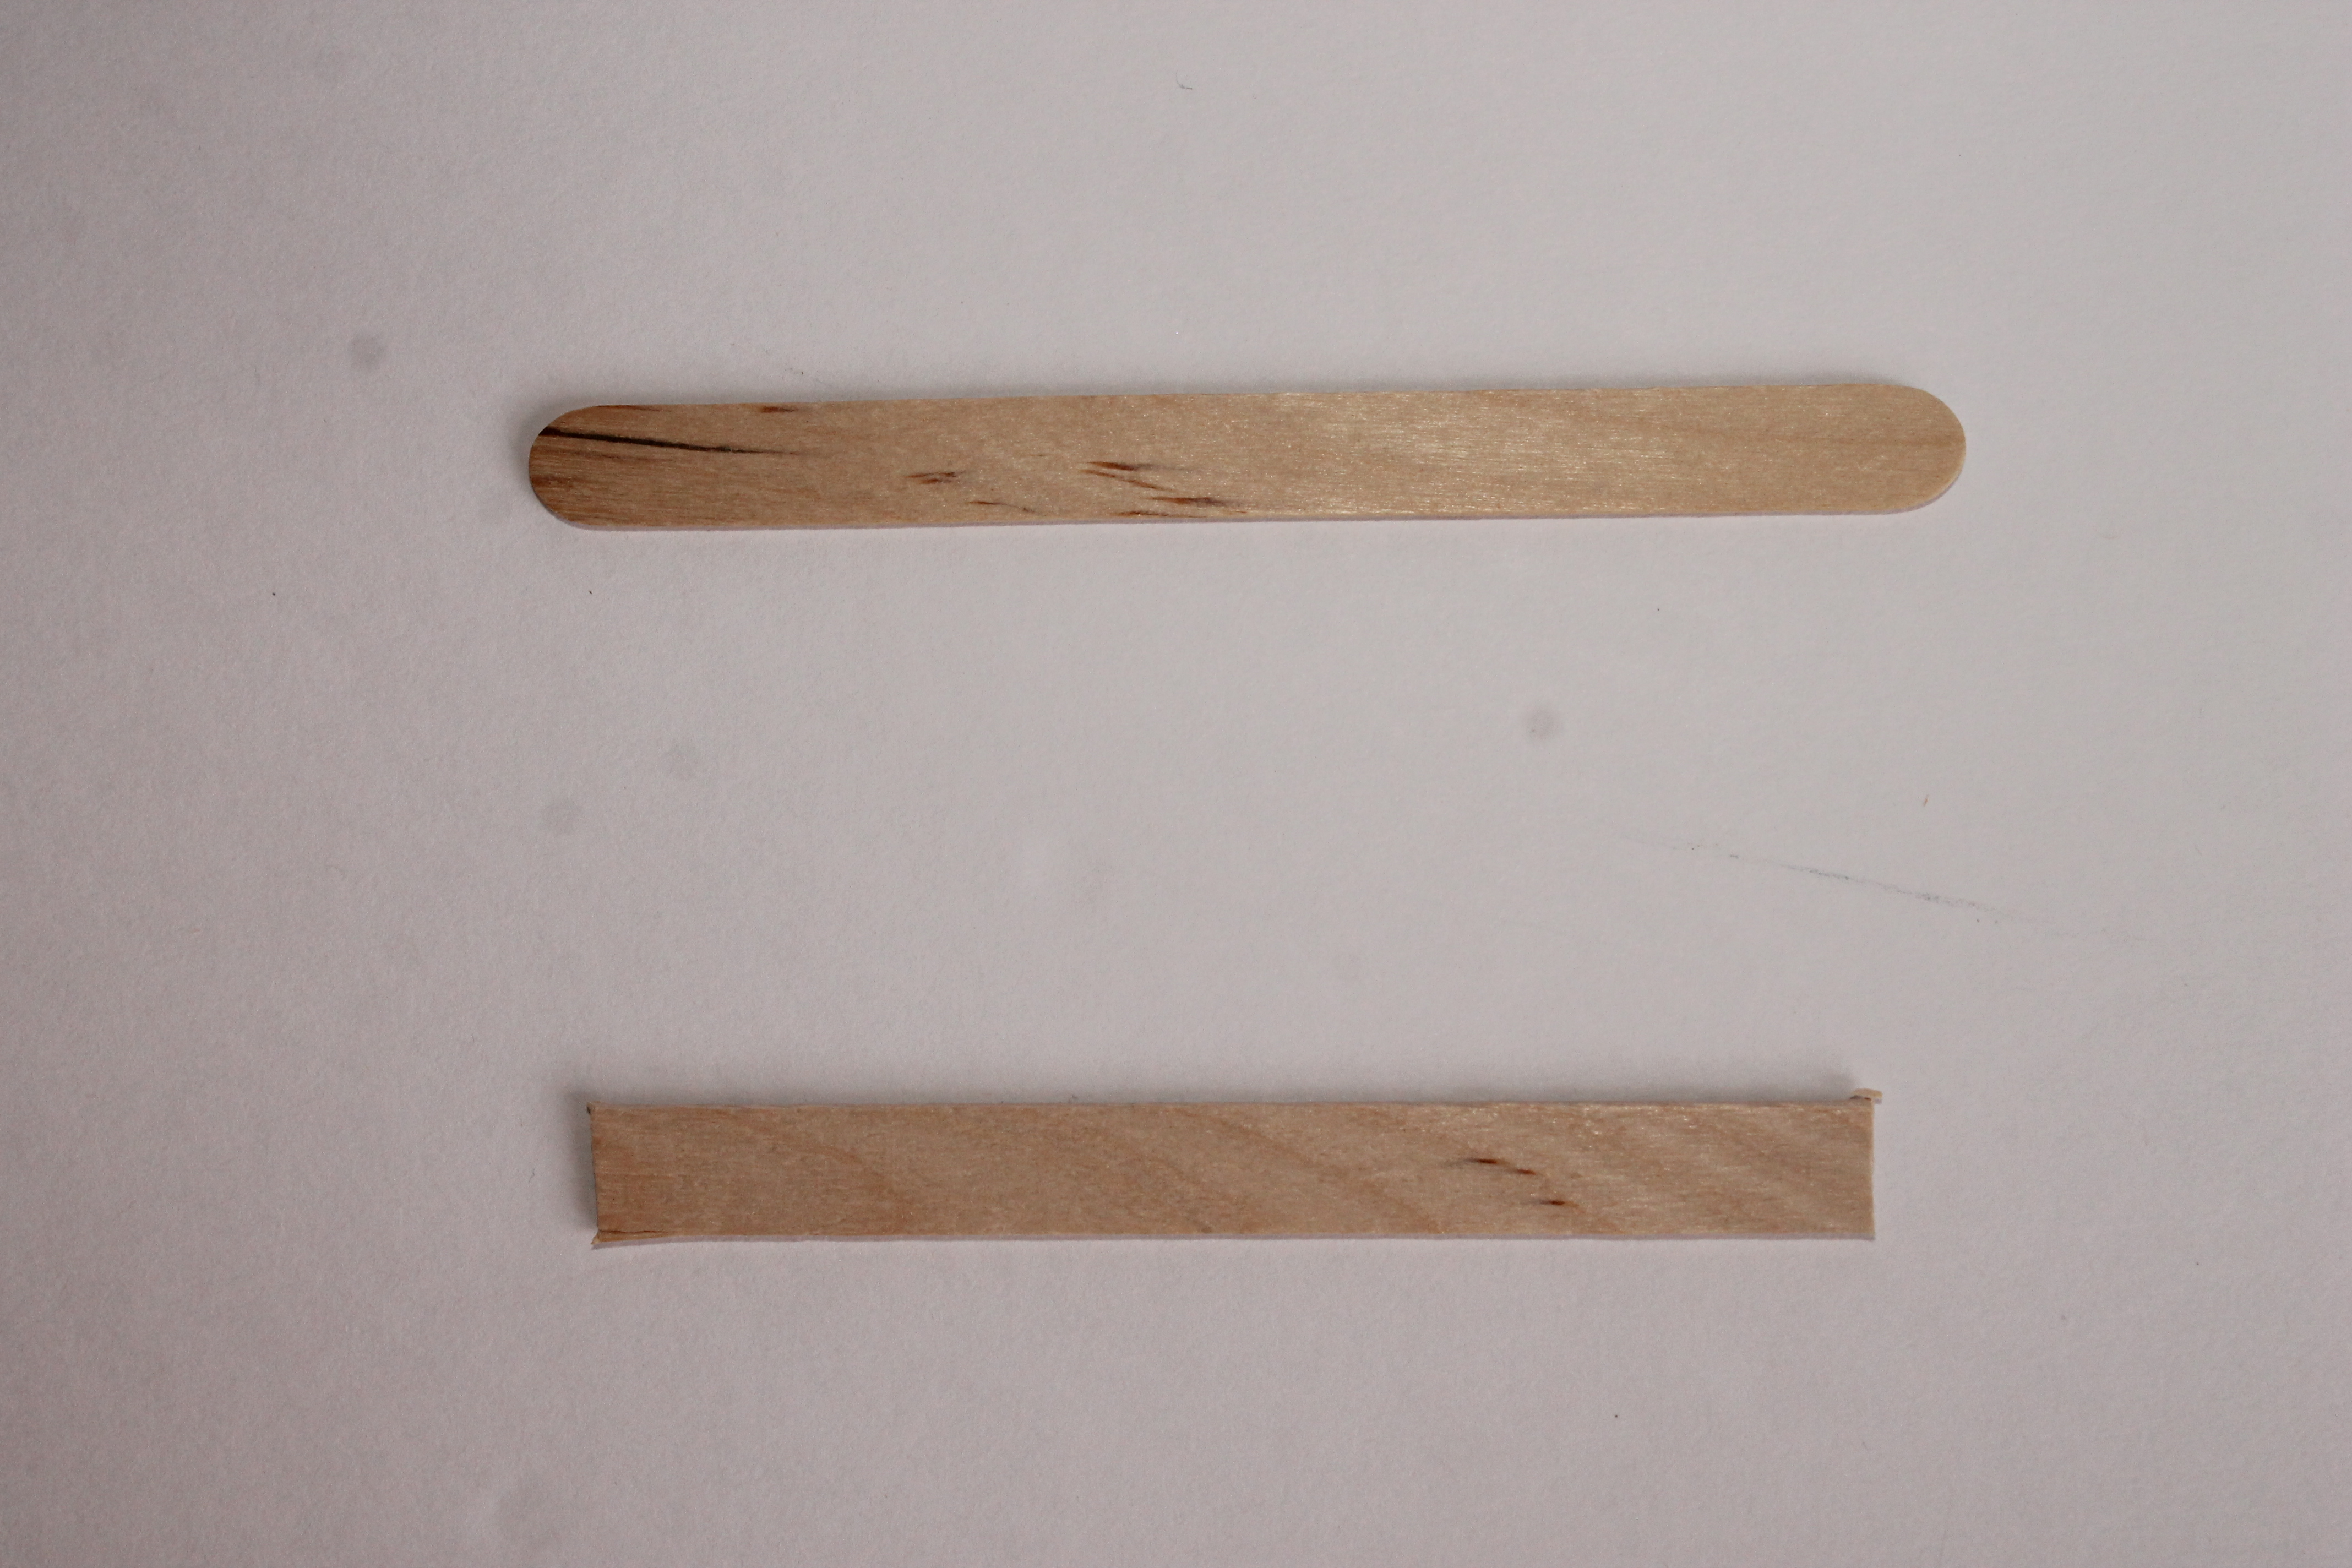 Picture of Cut the Popsicle Sticks